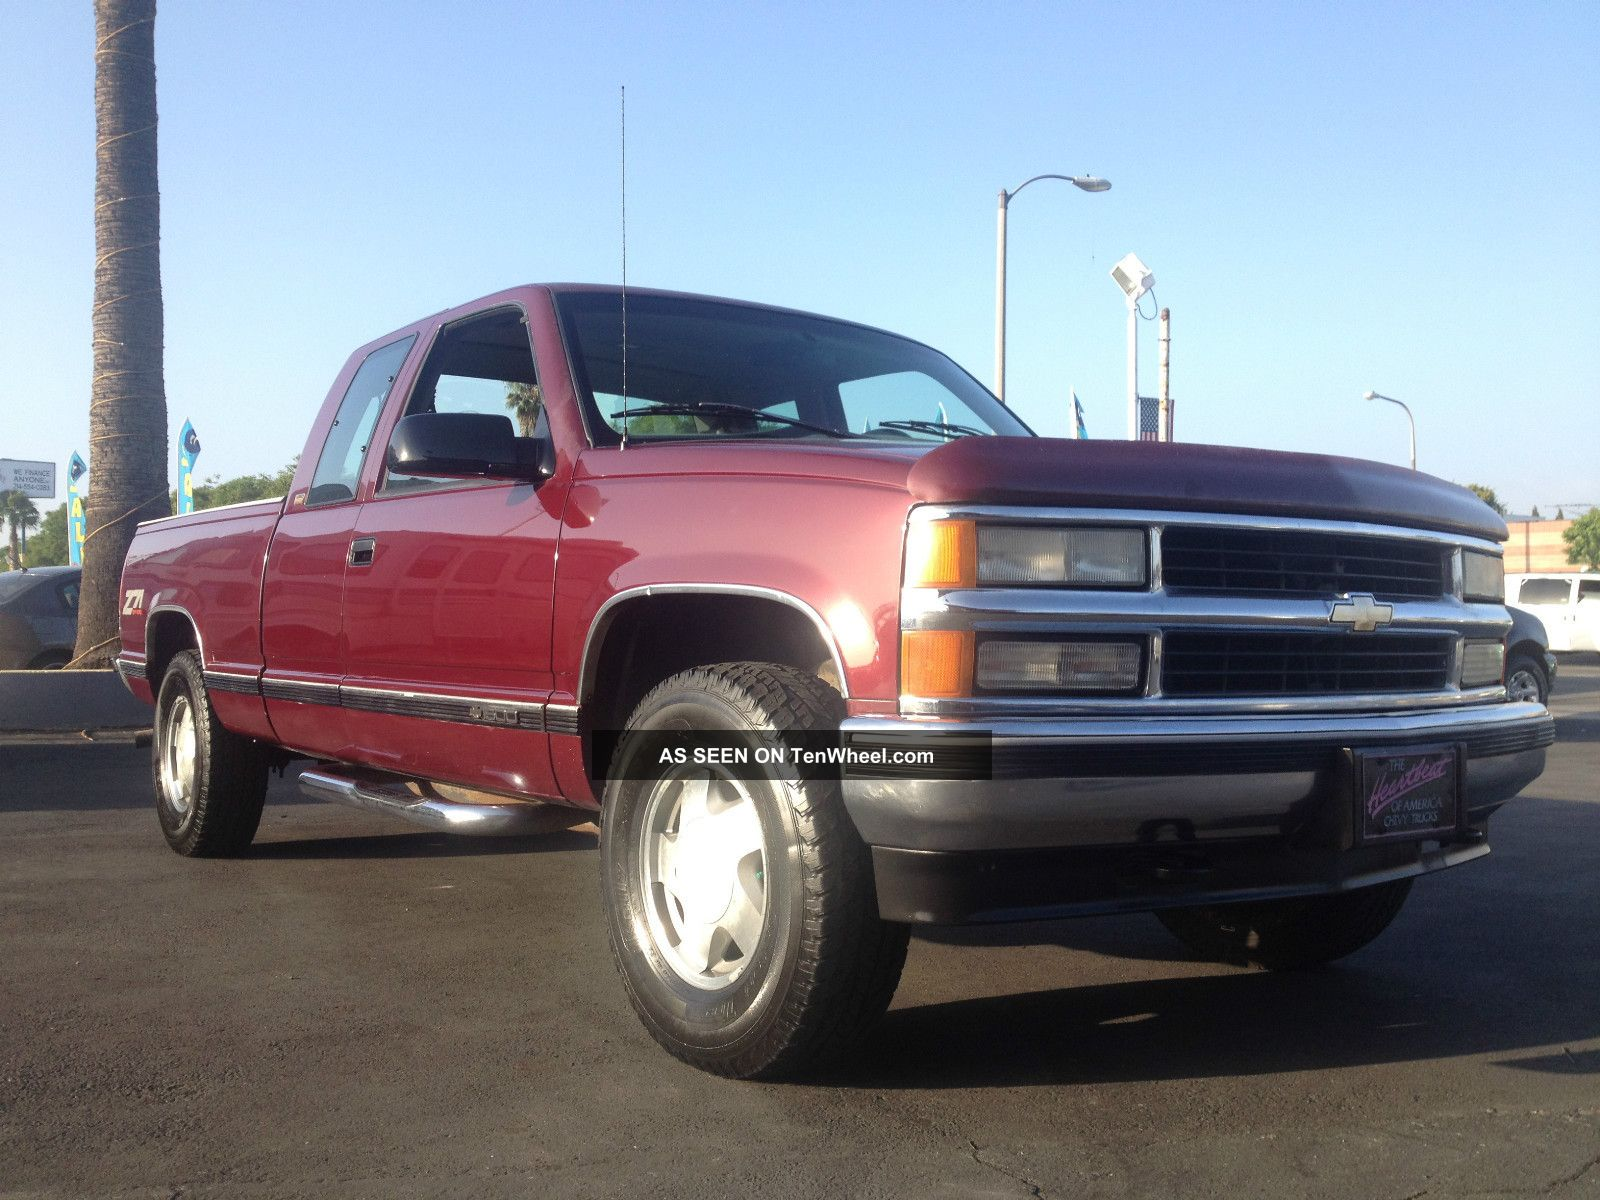 1996 Chevy Silverado Z71 C/K Pickup 1500 photo